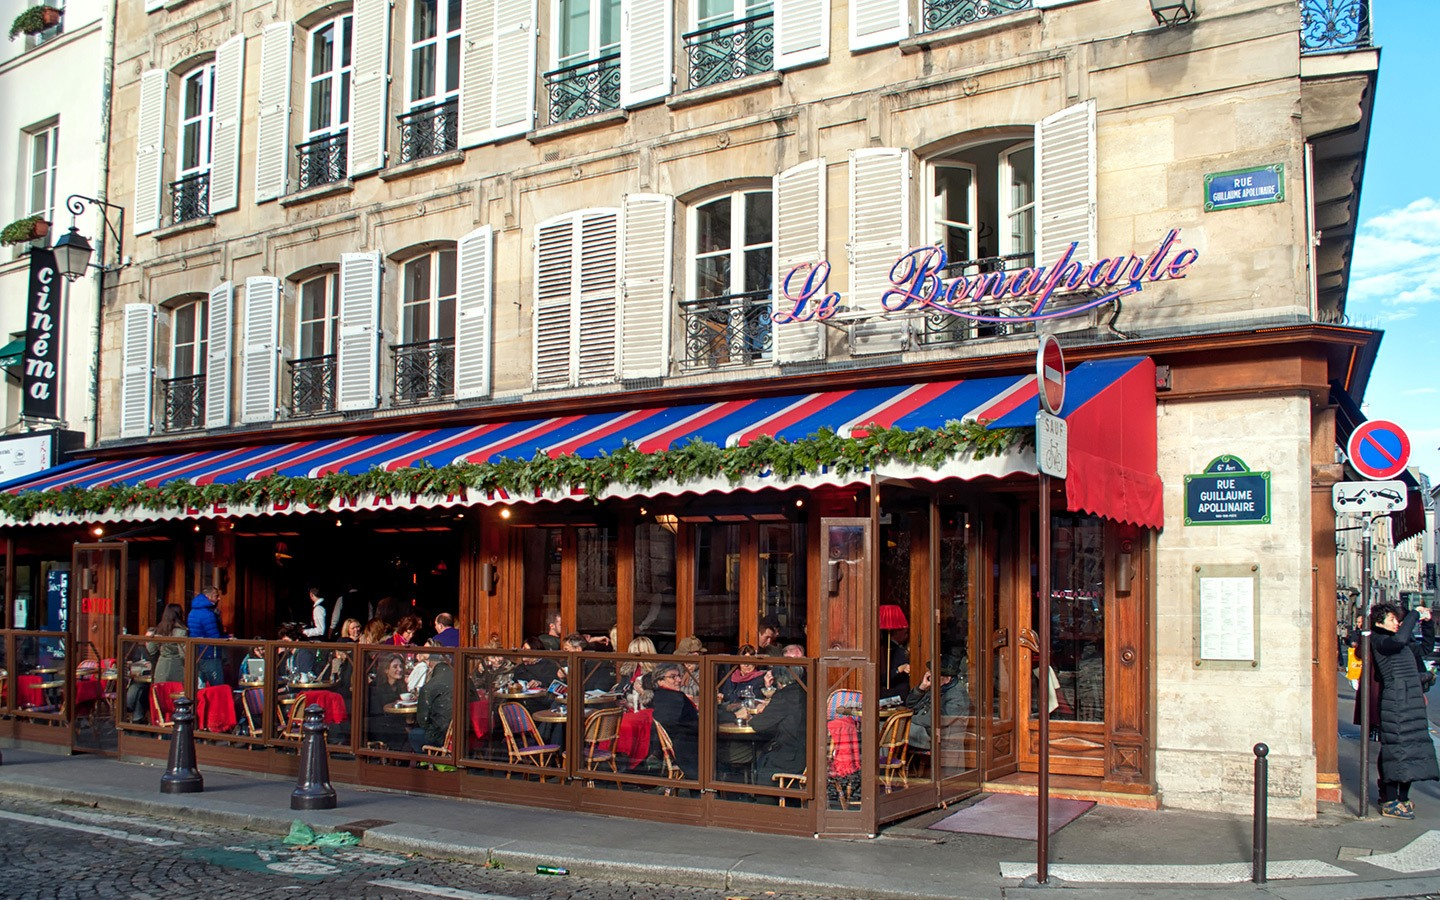 Bonaparte Café in St Germain, Paris' Left Bank